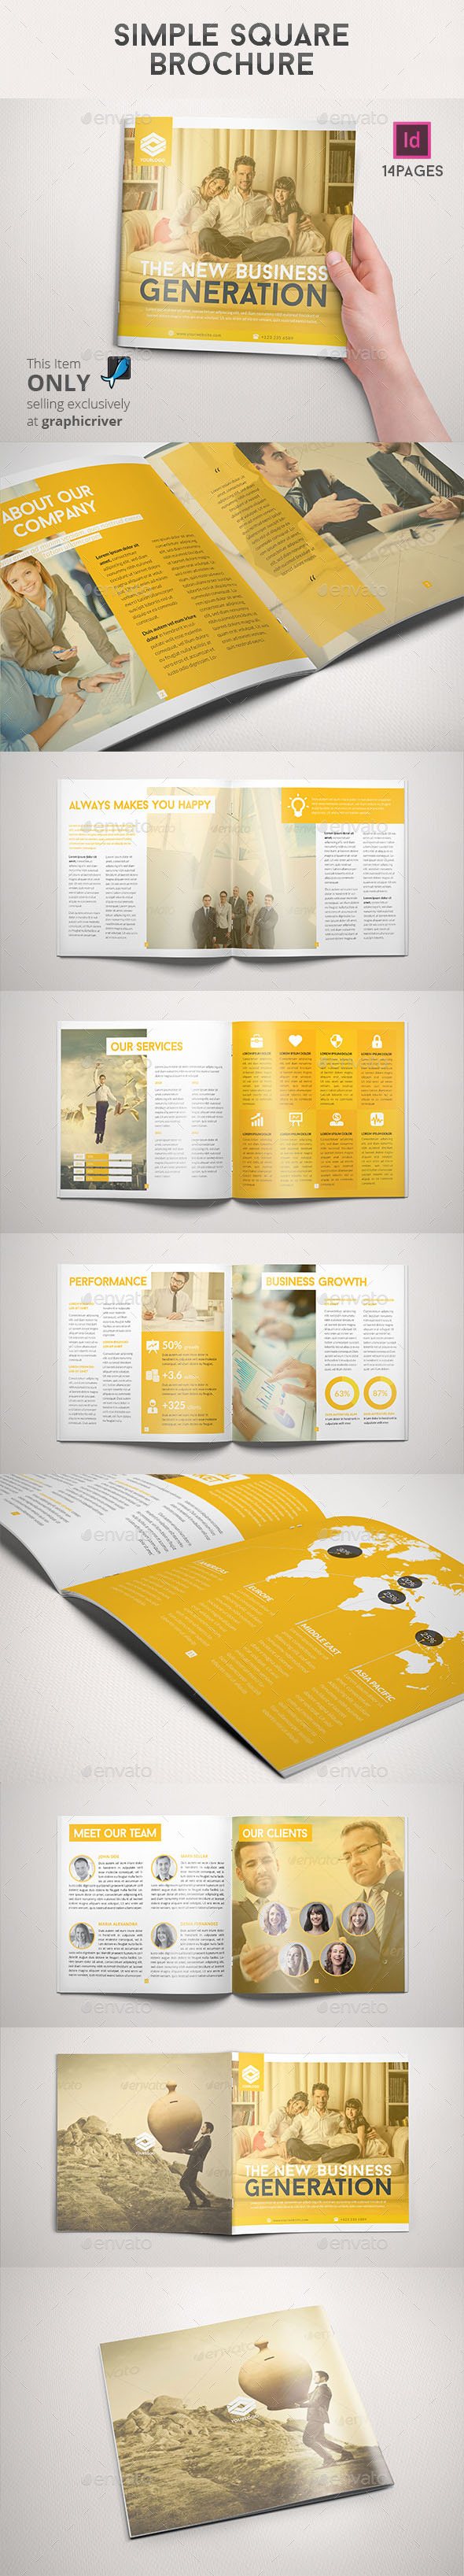 GraphicRiver Simple Square Brochure 9111910